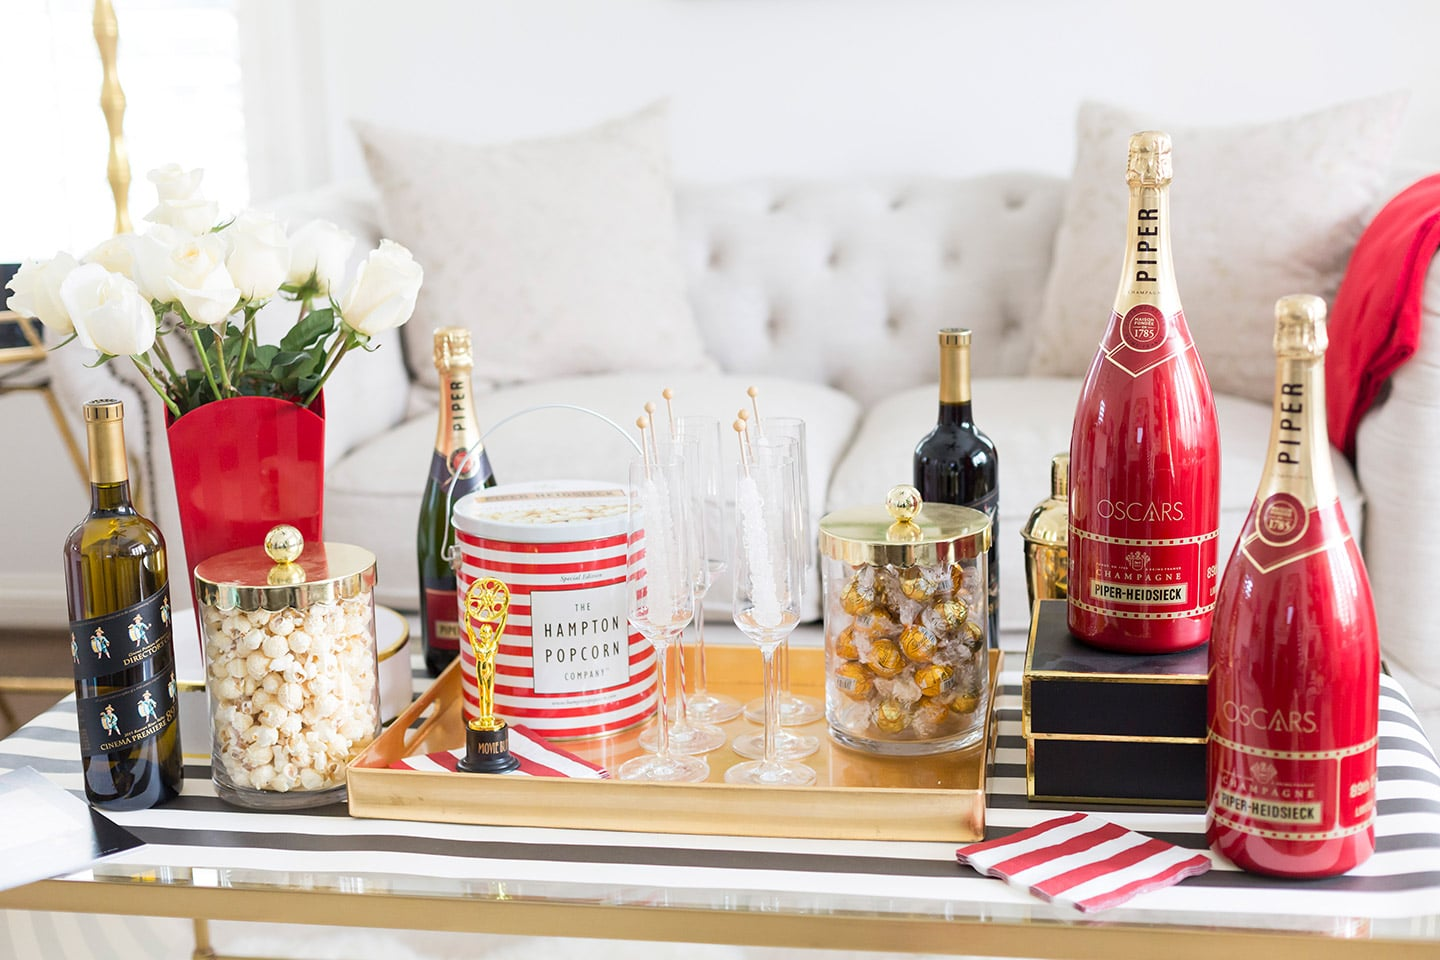 Oscars Viewing Party Tips!